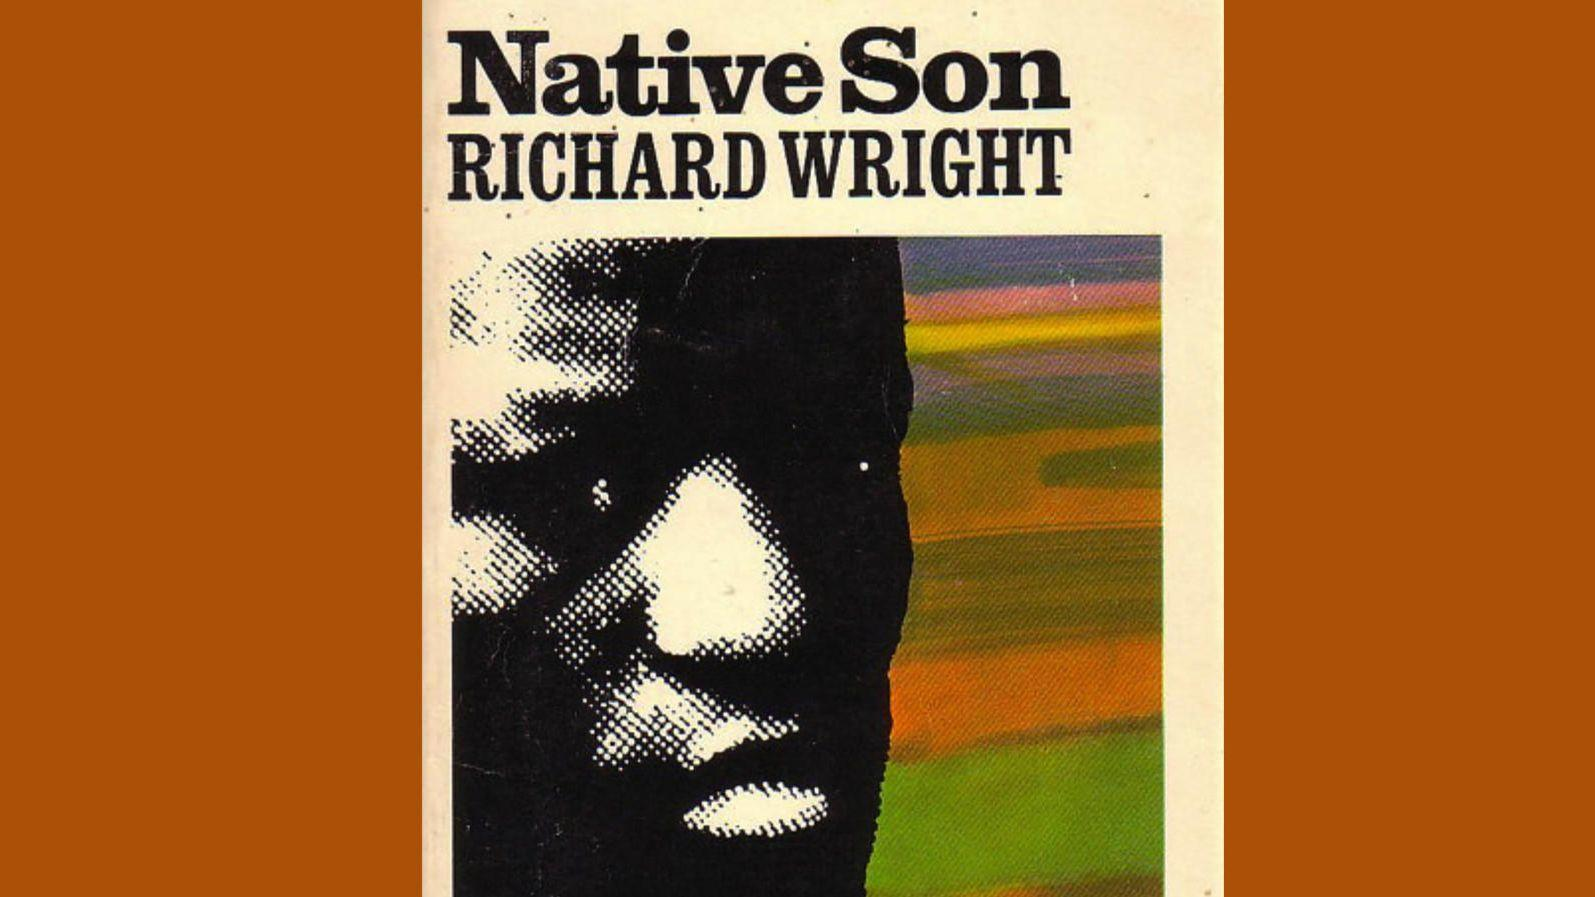 the transformation of the protagonist in the novel native son by richard wright Native son by: richard wright summary plot overview summary & analysis book one (part one)  the protagonist of native son a poor, uneducated black man, bigger comes from the lowest rung on the american social and economic ladder  at the beginning of the novel, bigger taunts his friends about their fear, even though he is just as.